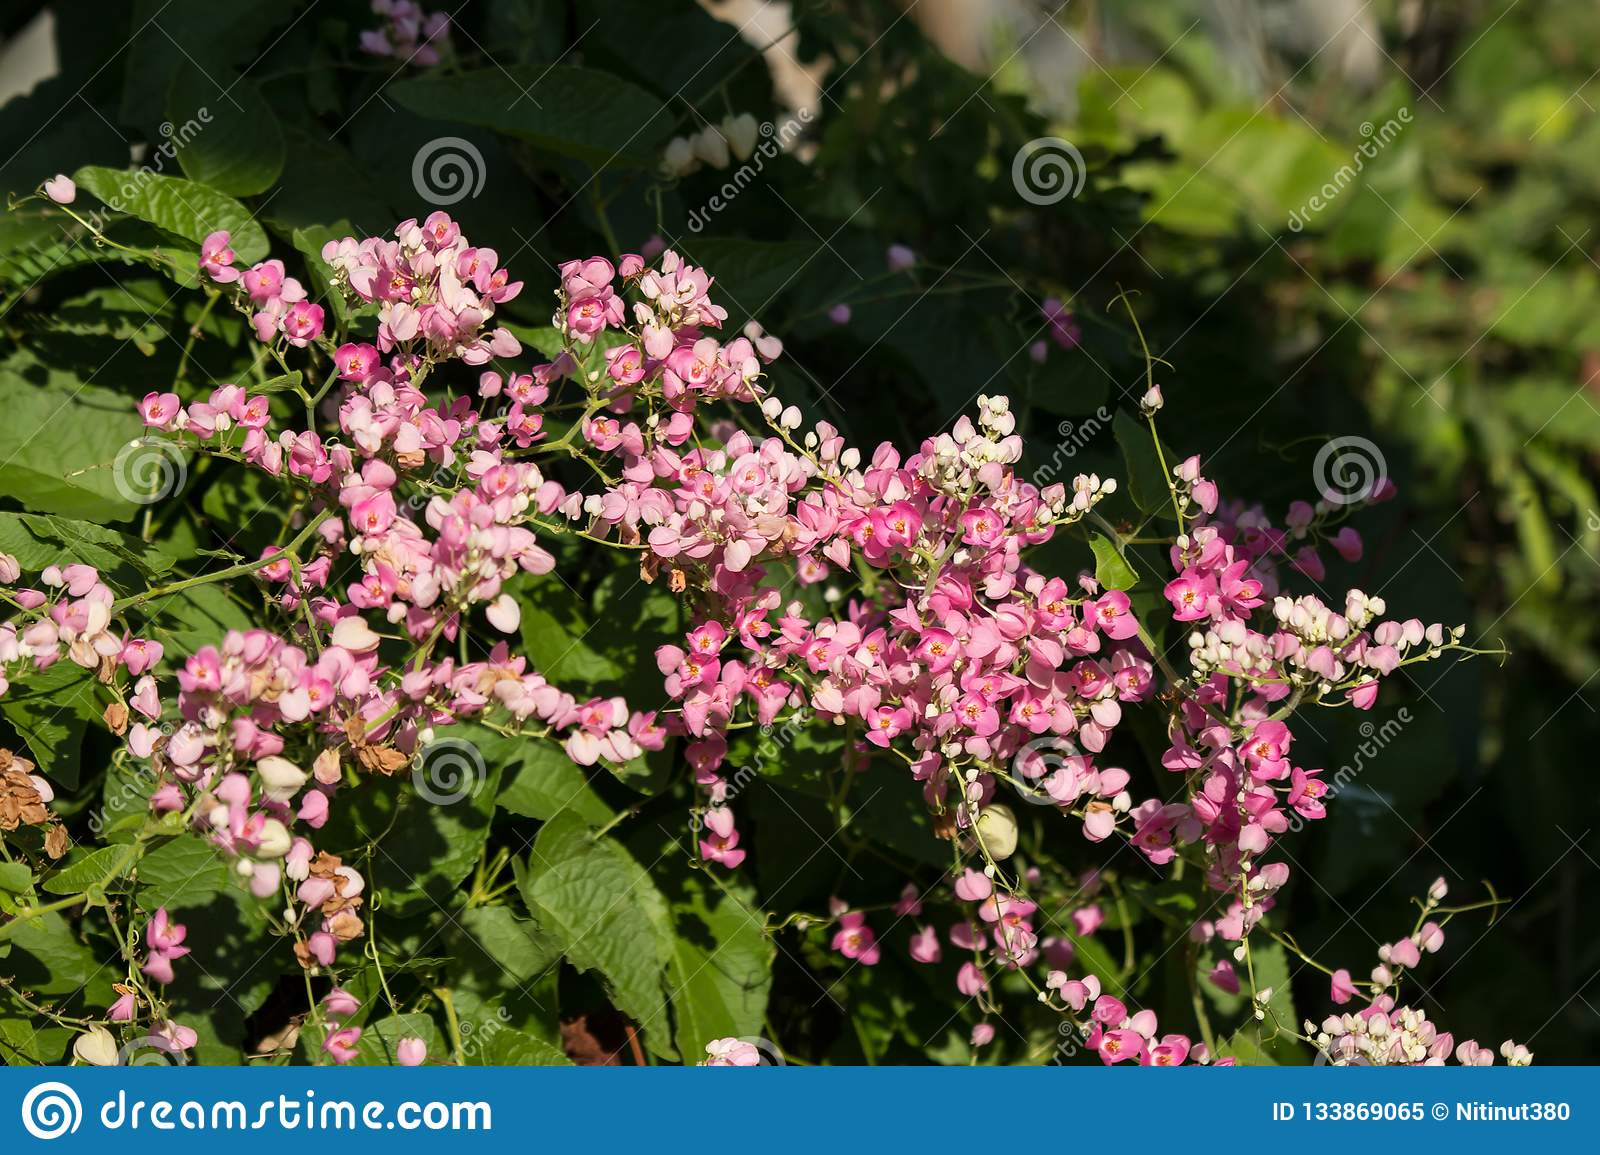 Mexican Creeper Flower Small Pink Mix White Flower Stock Image